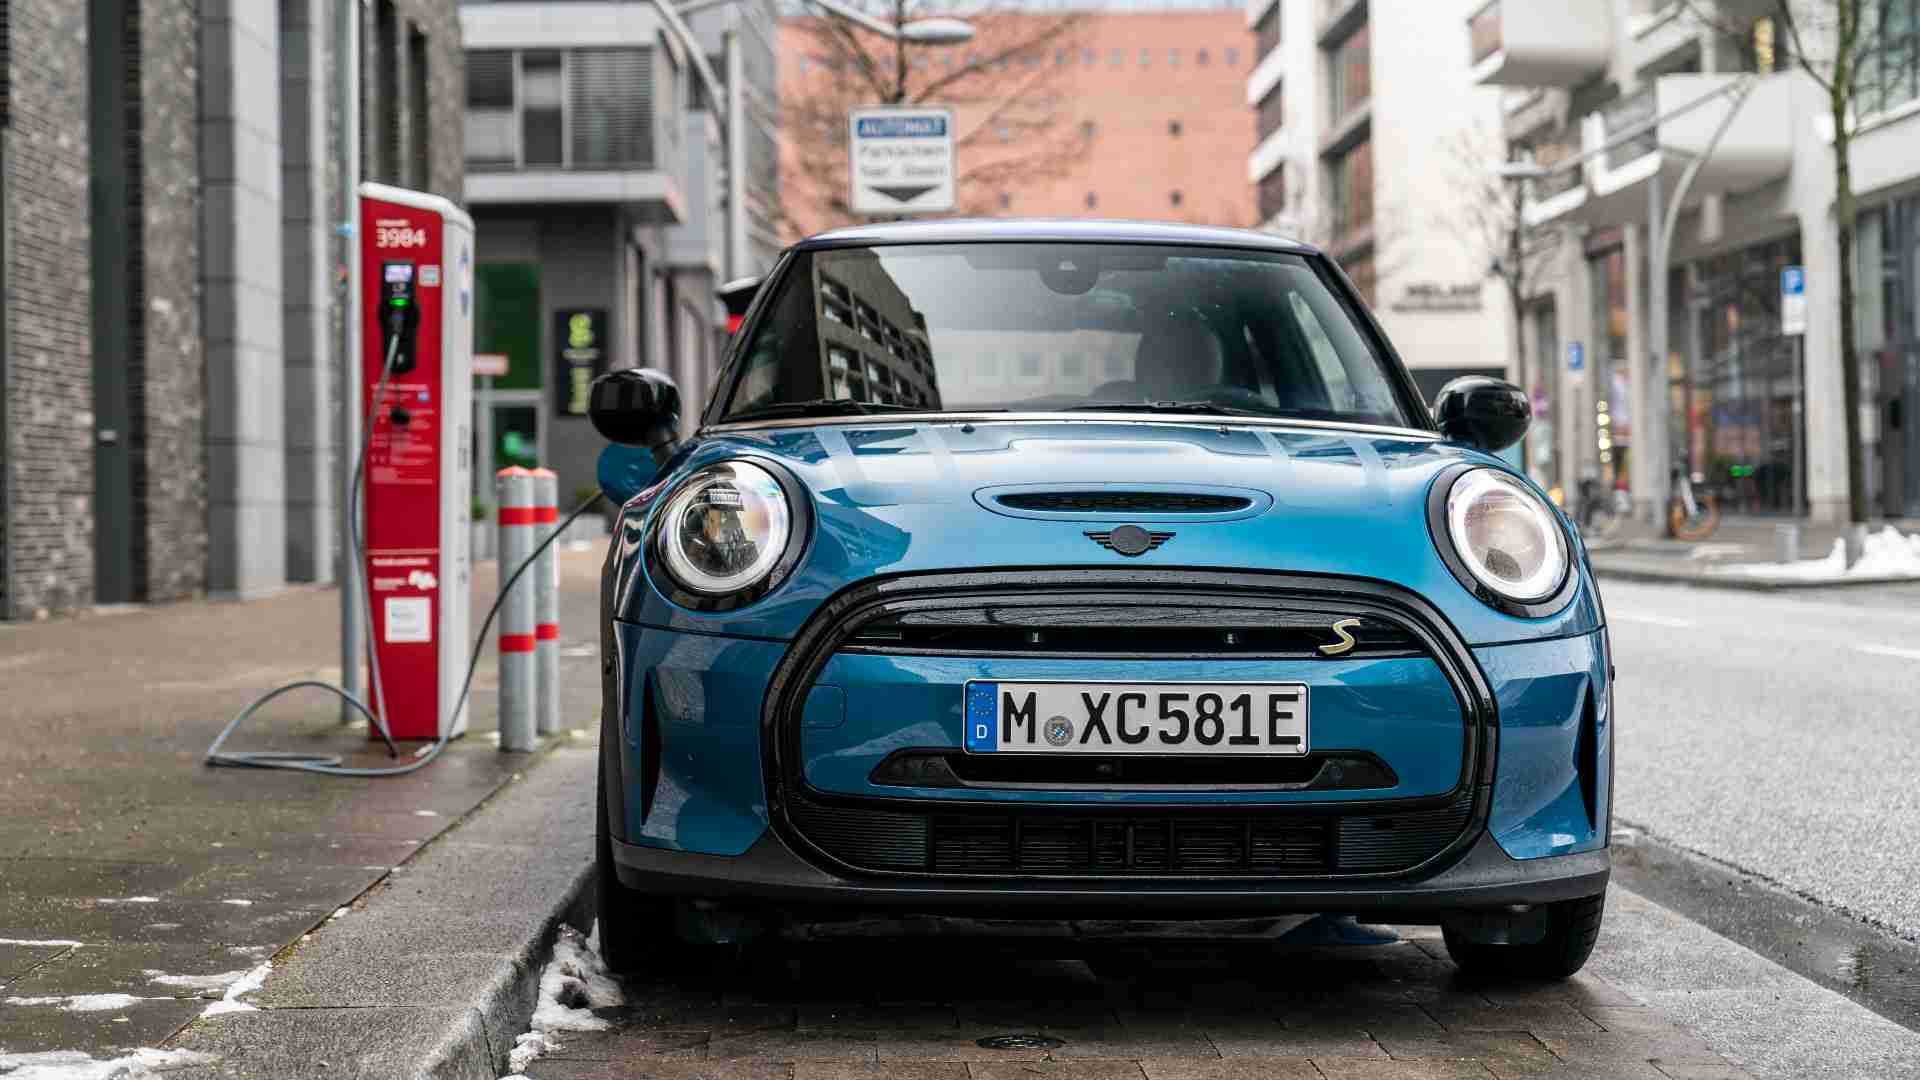 Mini to go all-electric by the 'early 2030s', will roll out its final new ICE model in 2025